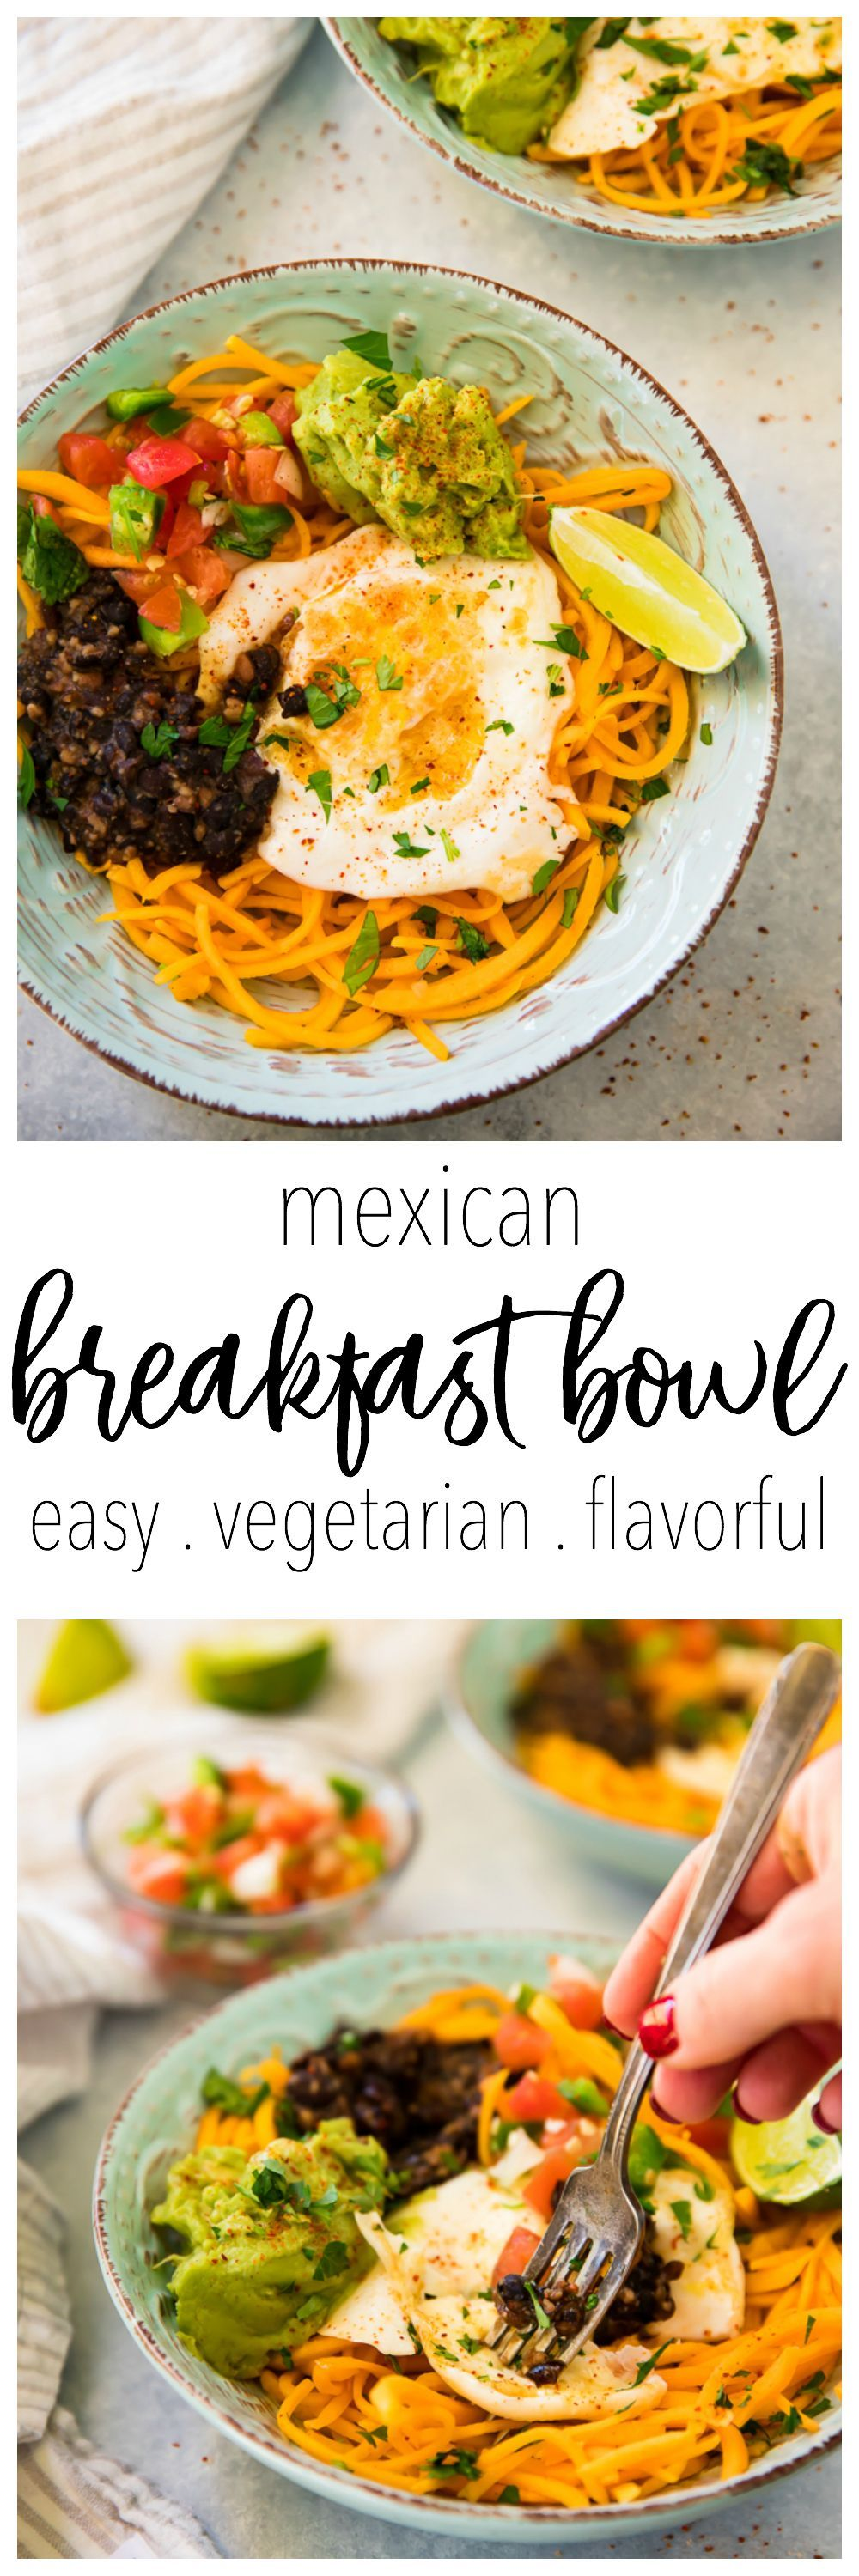 Easy mexican breakfast bowls with all the goods so